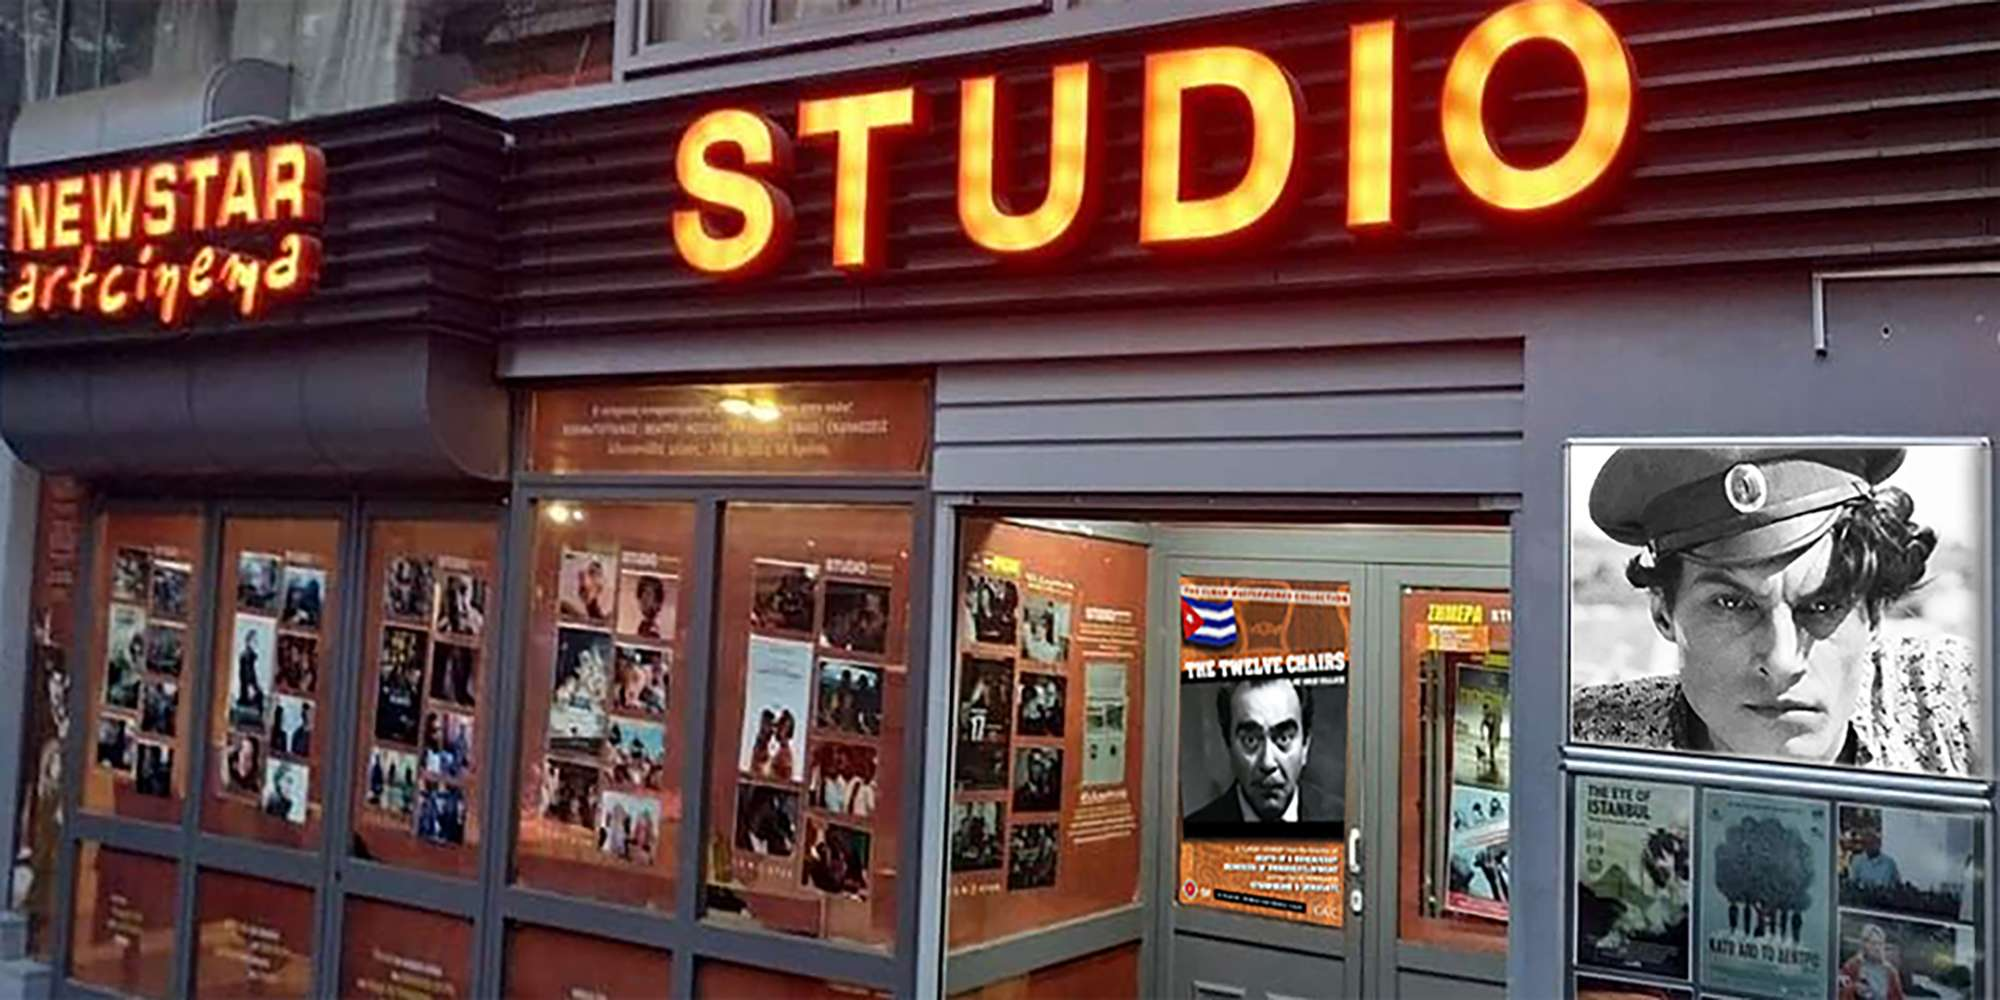 STUDIO new star art cinema 20 26 31 Αυγ